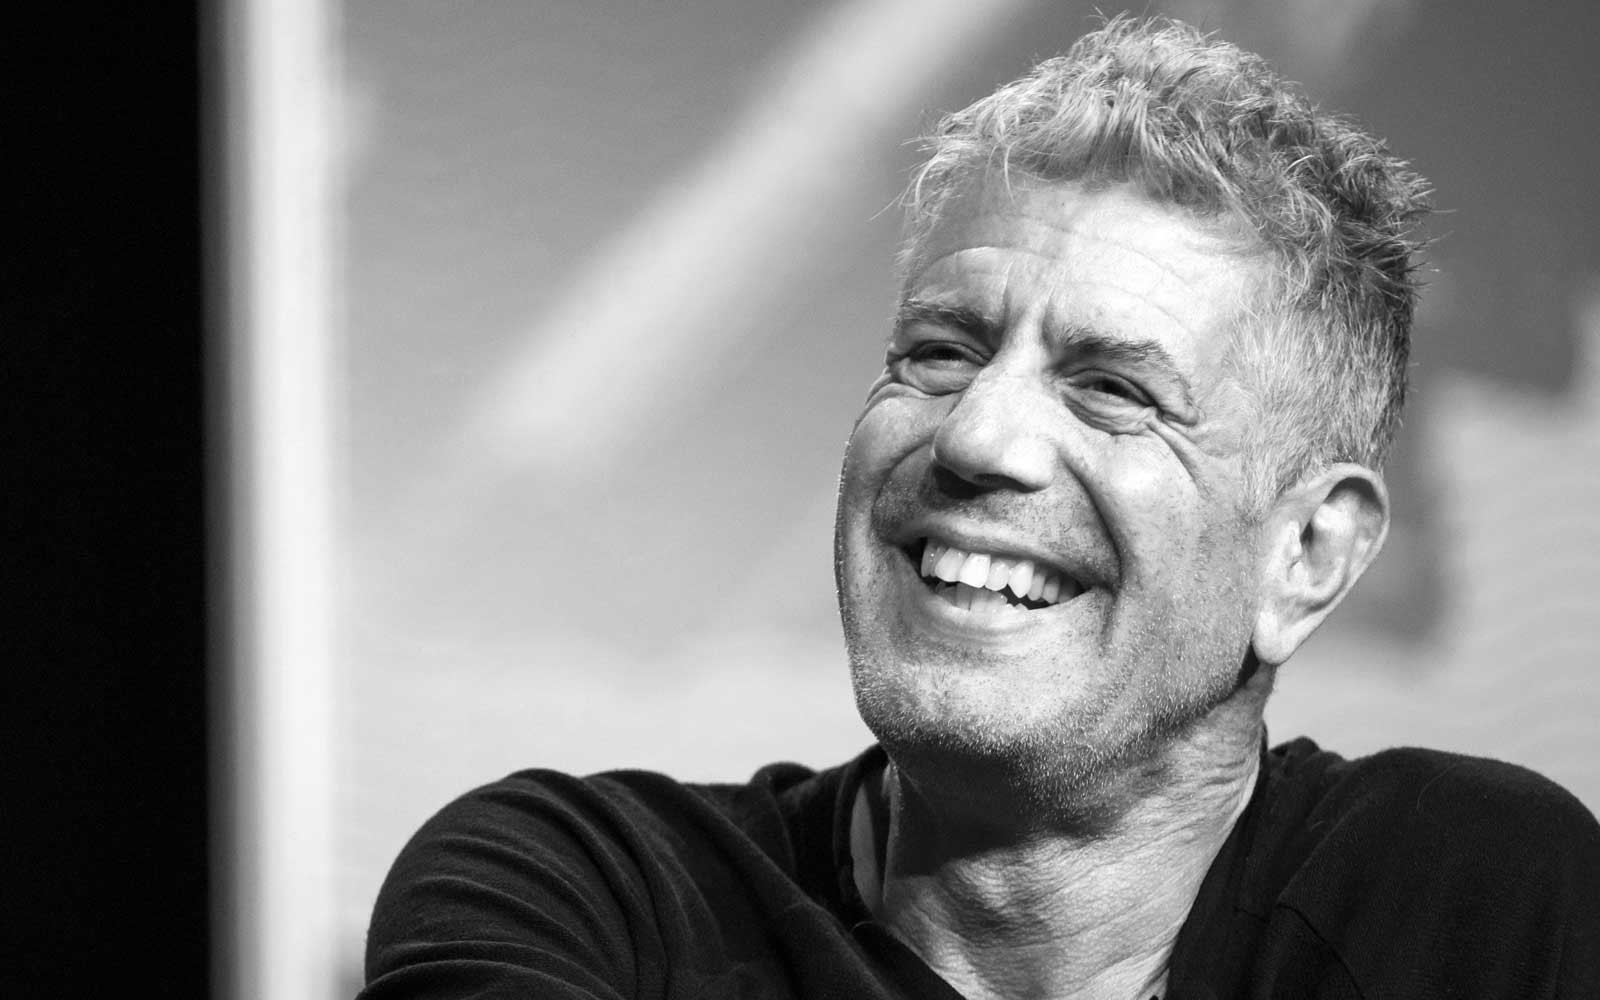 José Andrés and Eric Ripert Declare June 25 'Bourdain Day' to Honor Late Friend